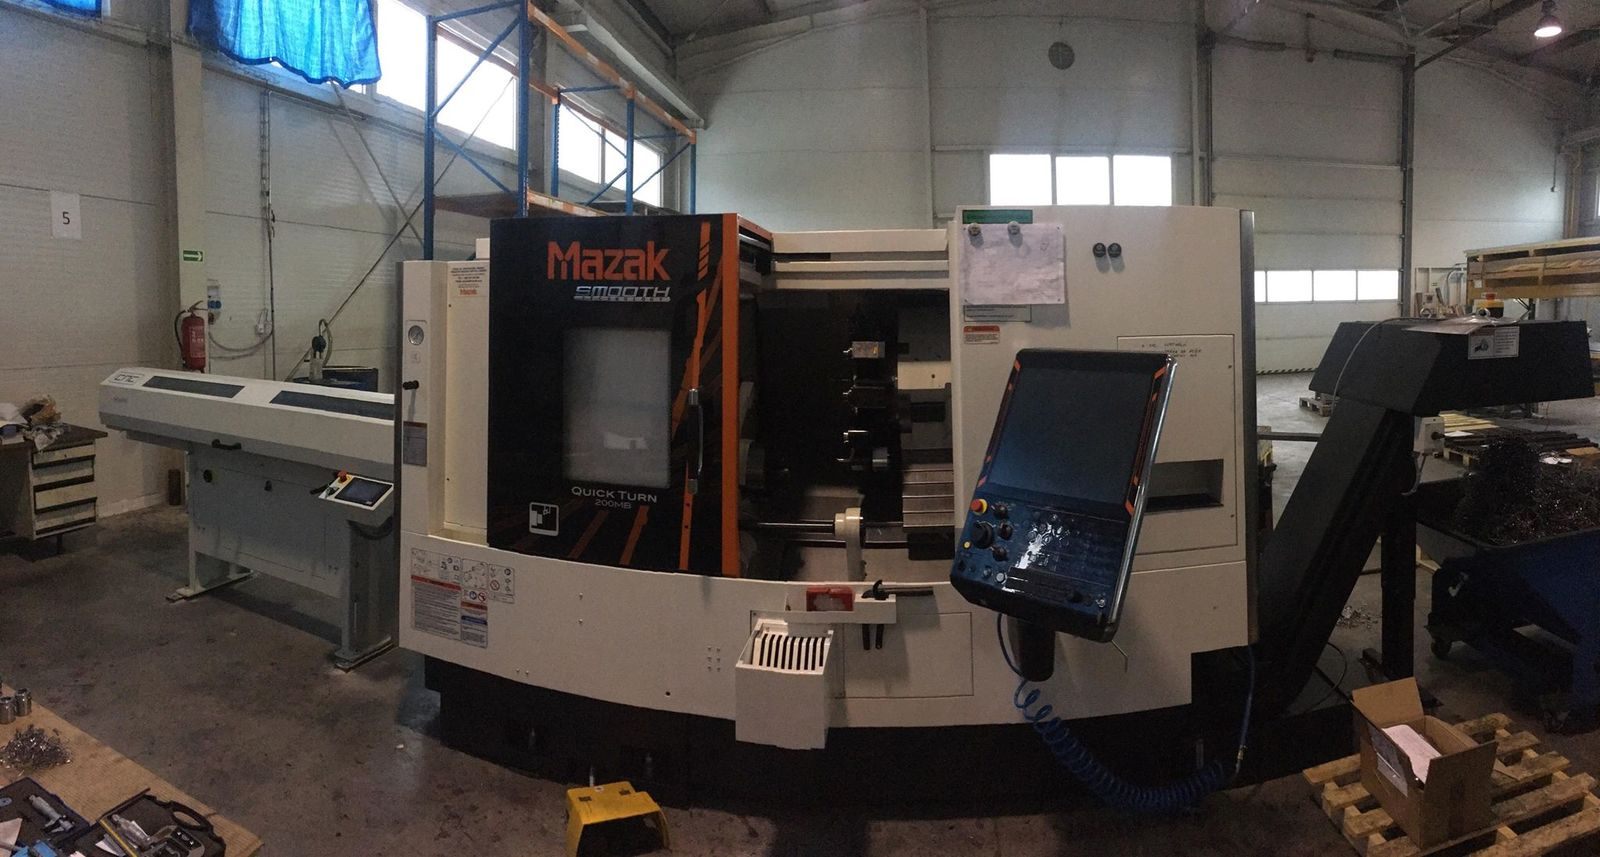 QUICK TURN 200MB - SMOOTH G, MAZAK